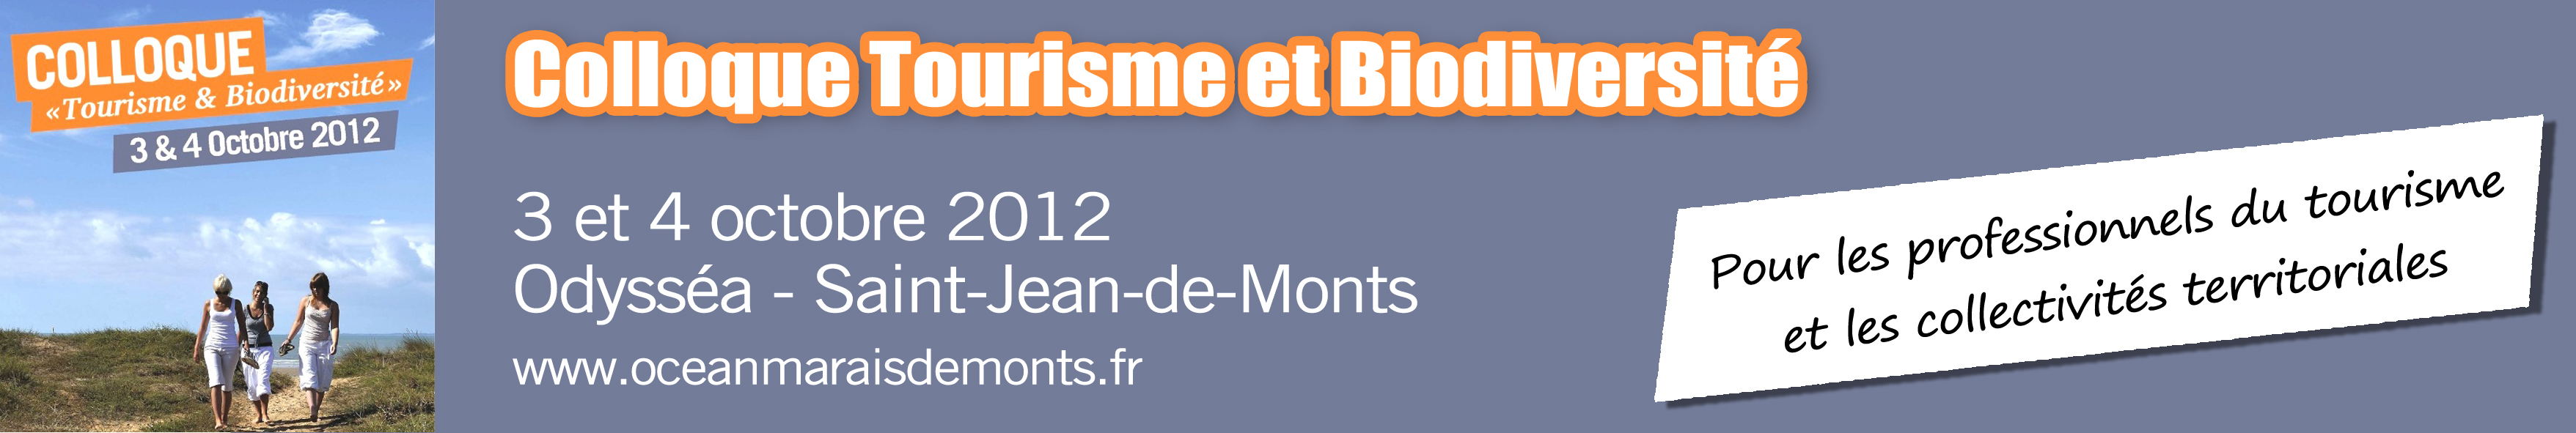 Colloque tourisme et biodiversit saint jean de monts - Office de tourisme de saint jean de monts ...